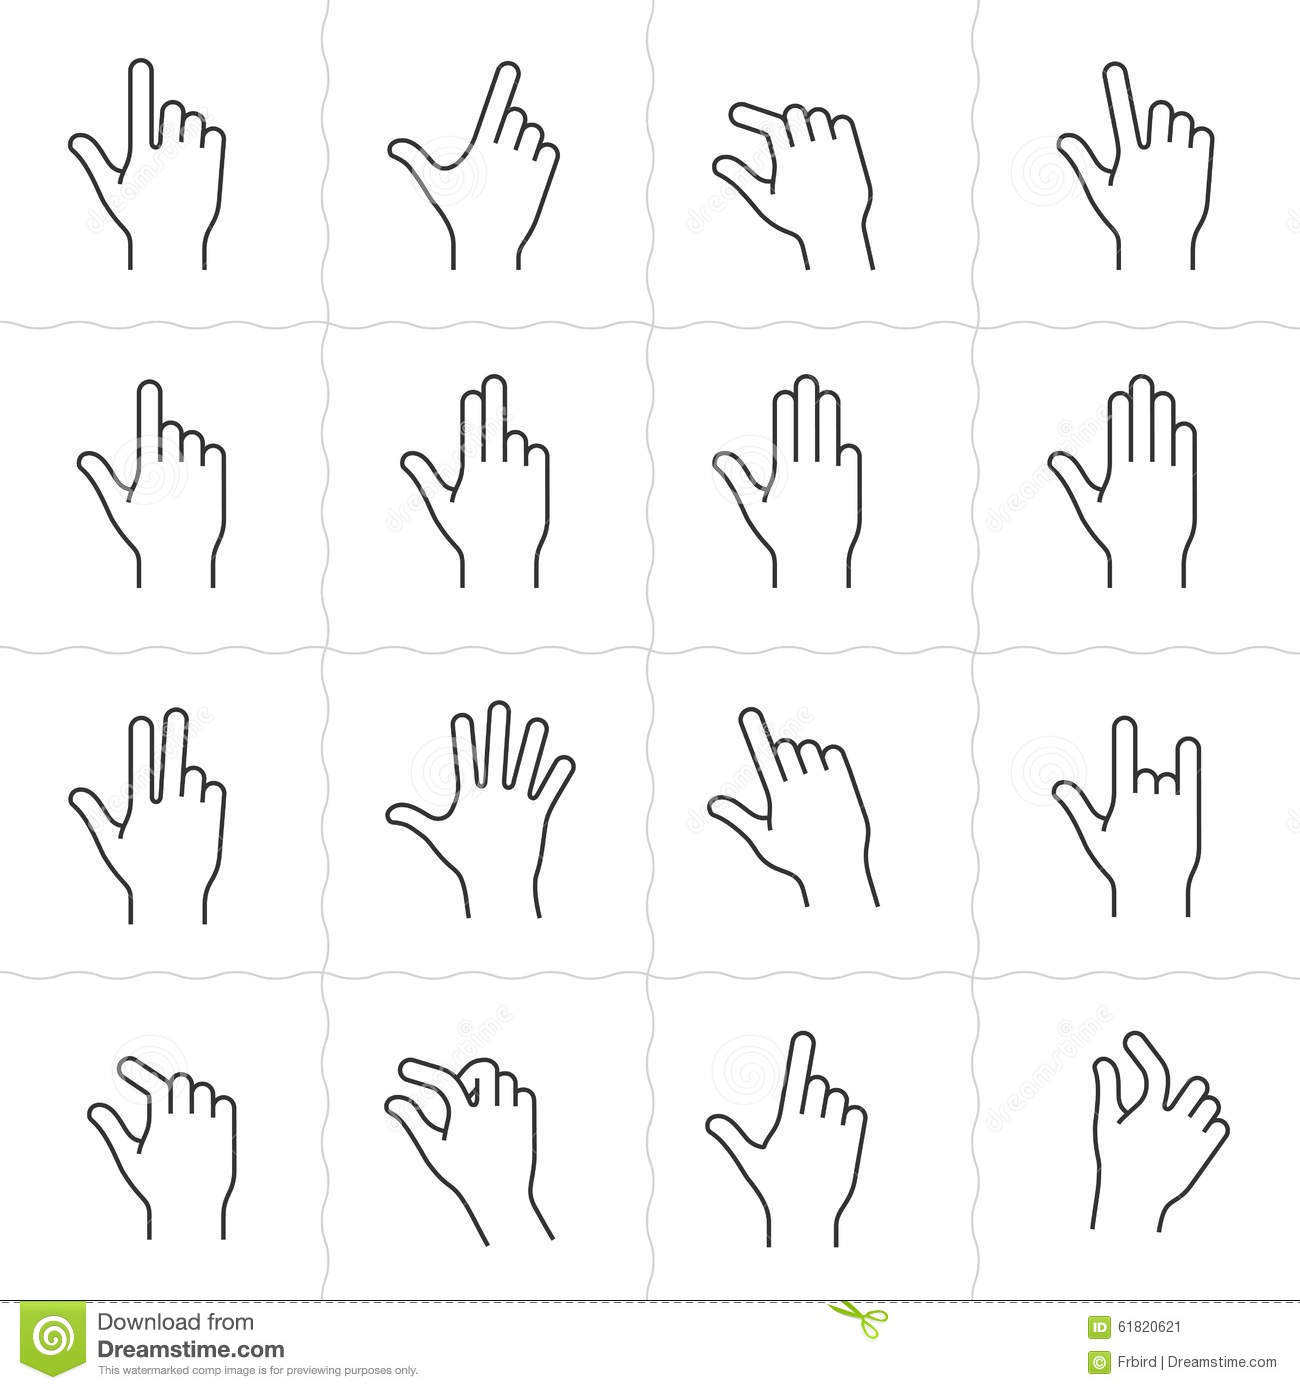 Gesture icon set stock vector. Image of element, pressing